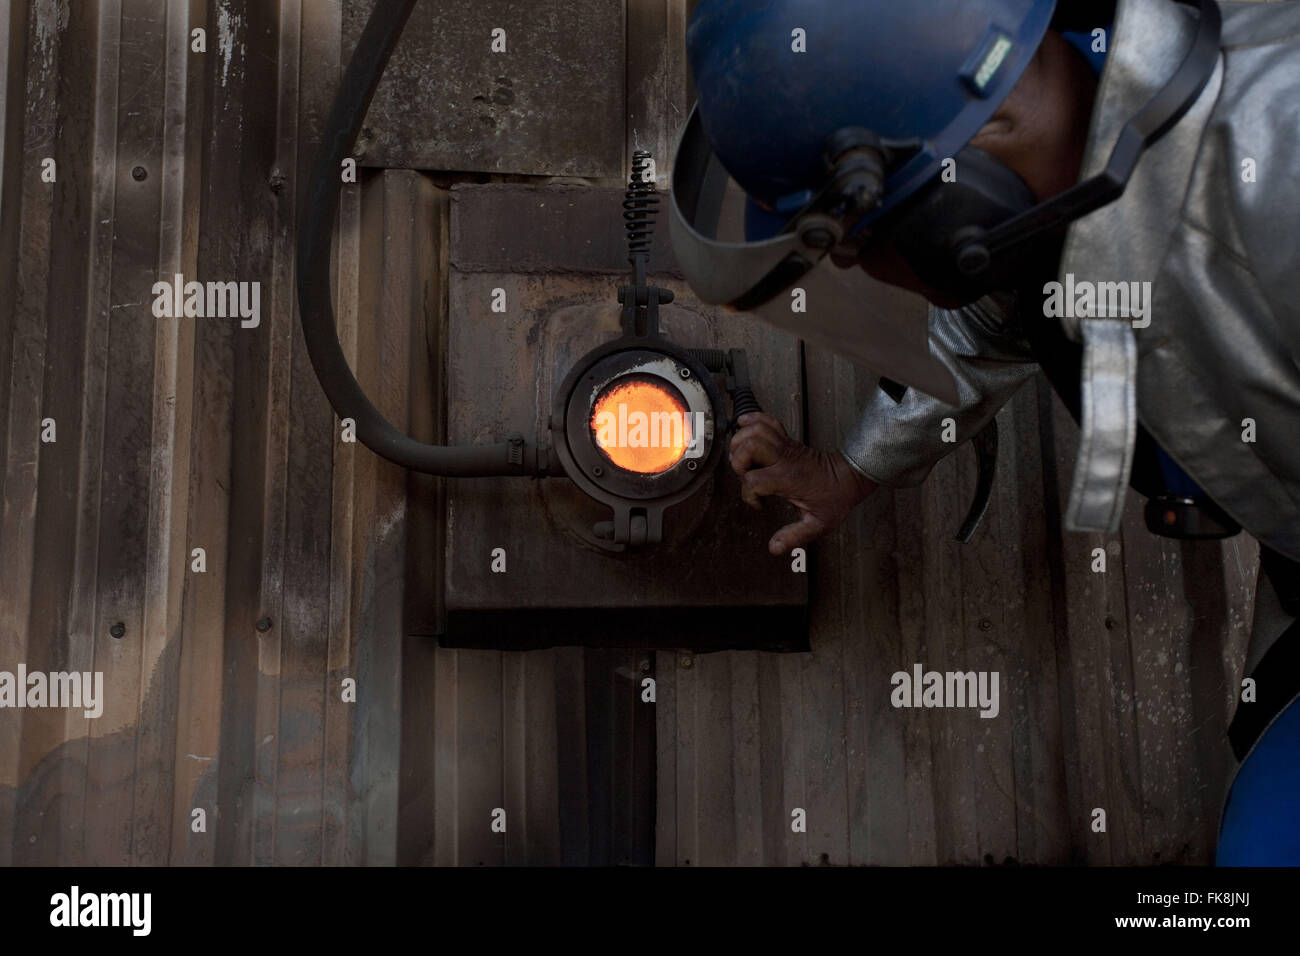 Furnace of a power cogeneration plant in cooperative - Stock Image